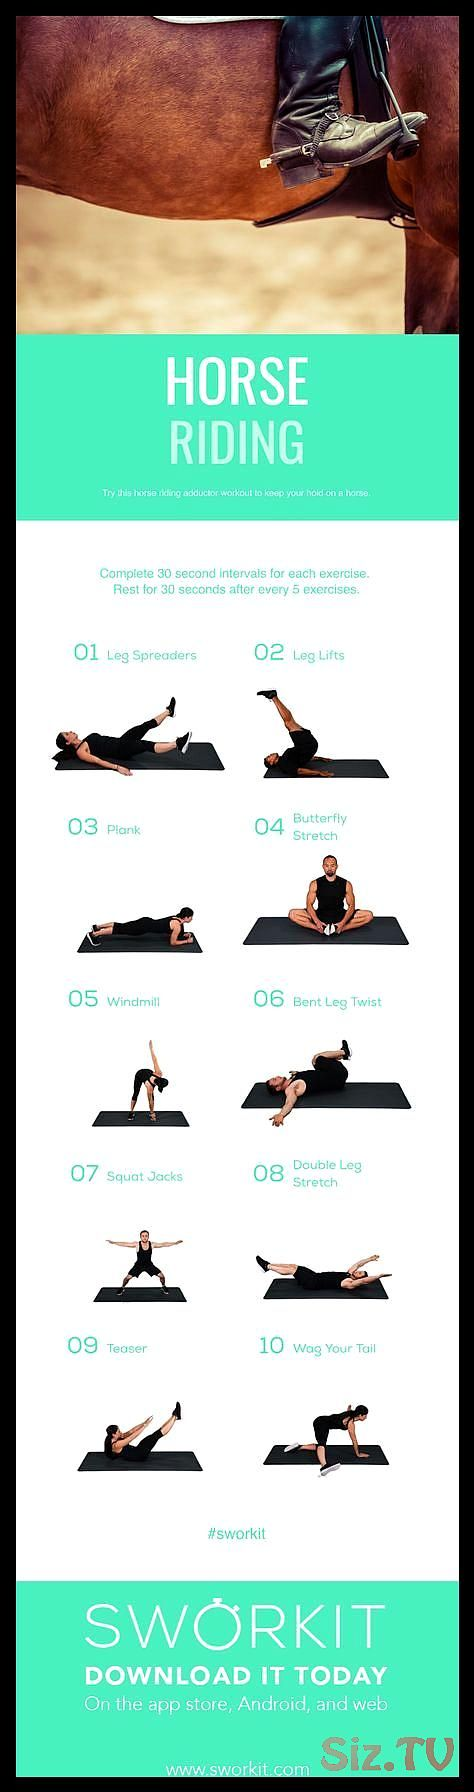 Sworkit Fitness Apps Horse Riding Conditioning Workout  Focusing on your adducto…